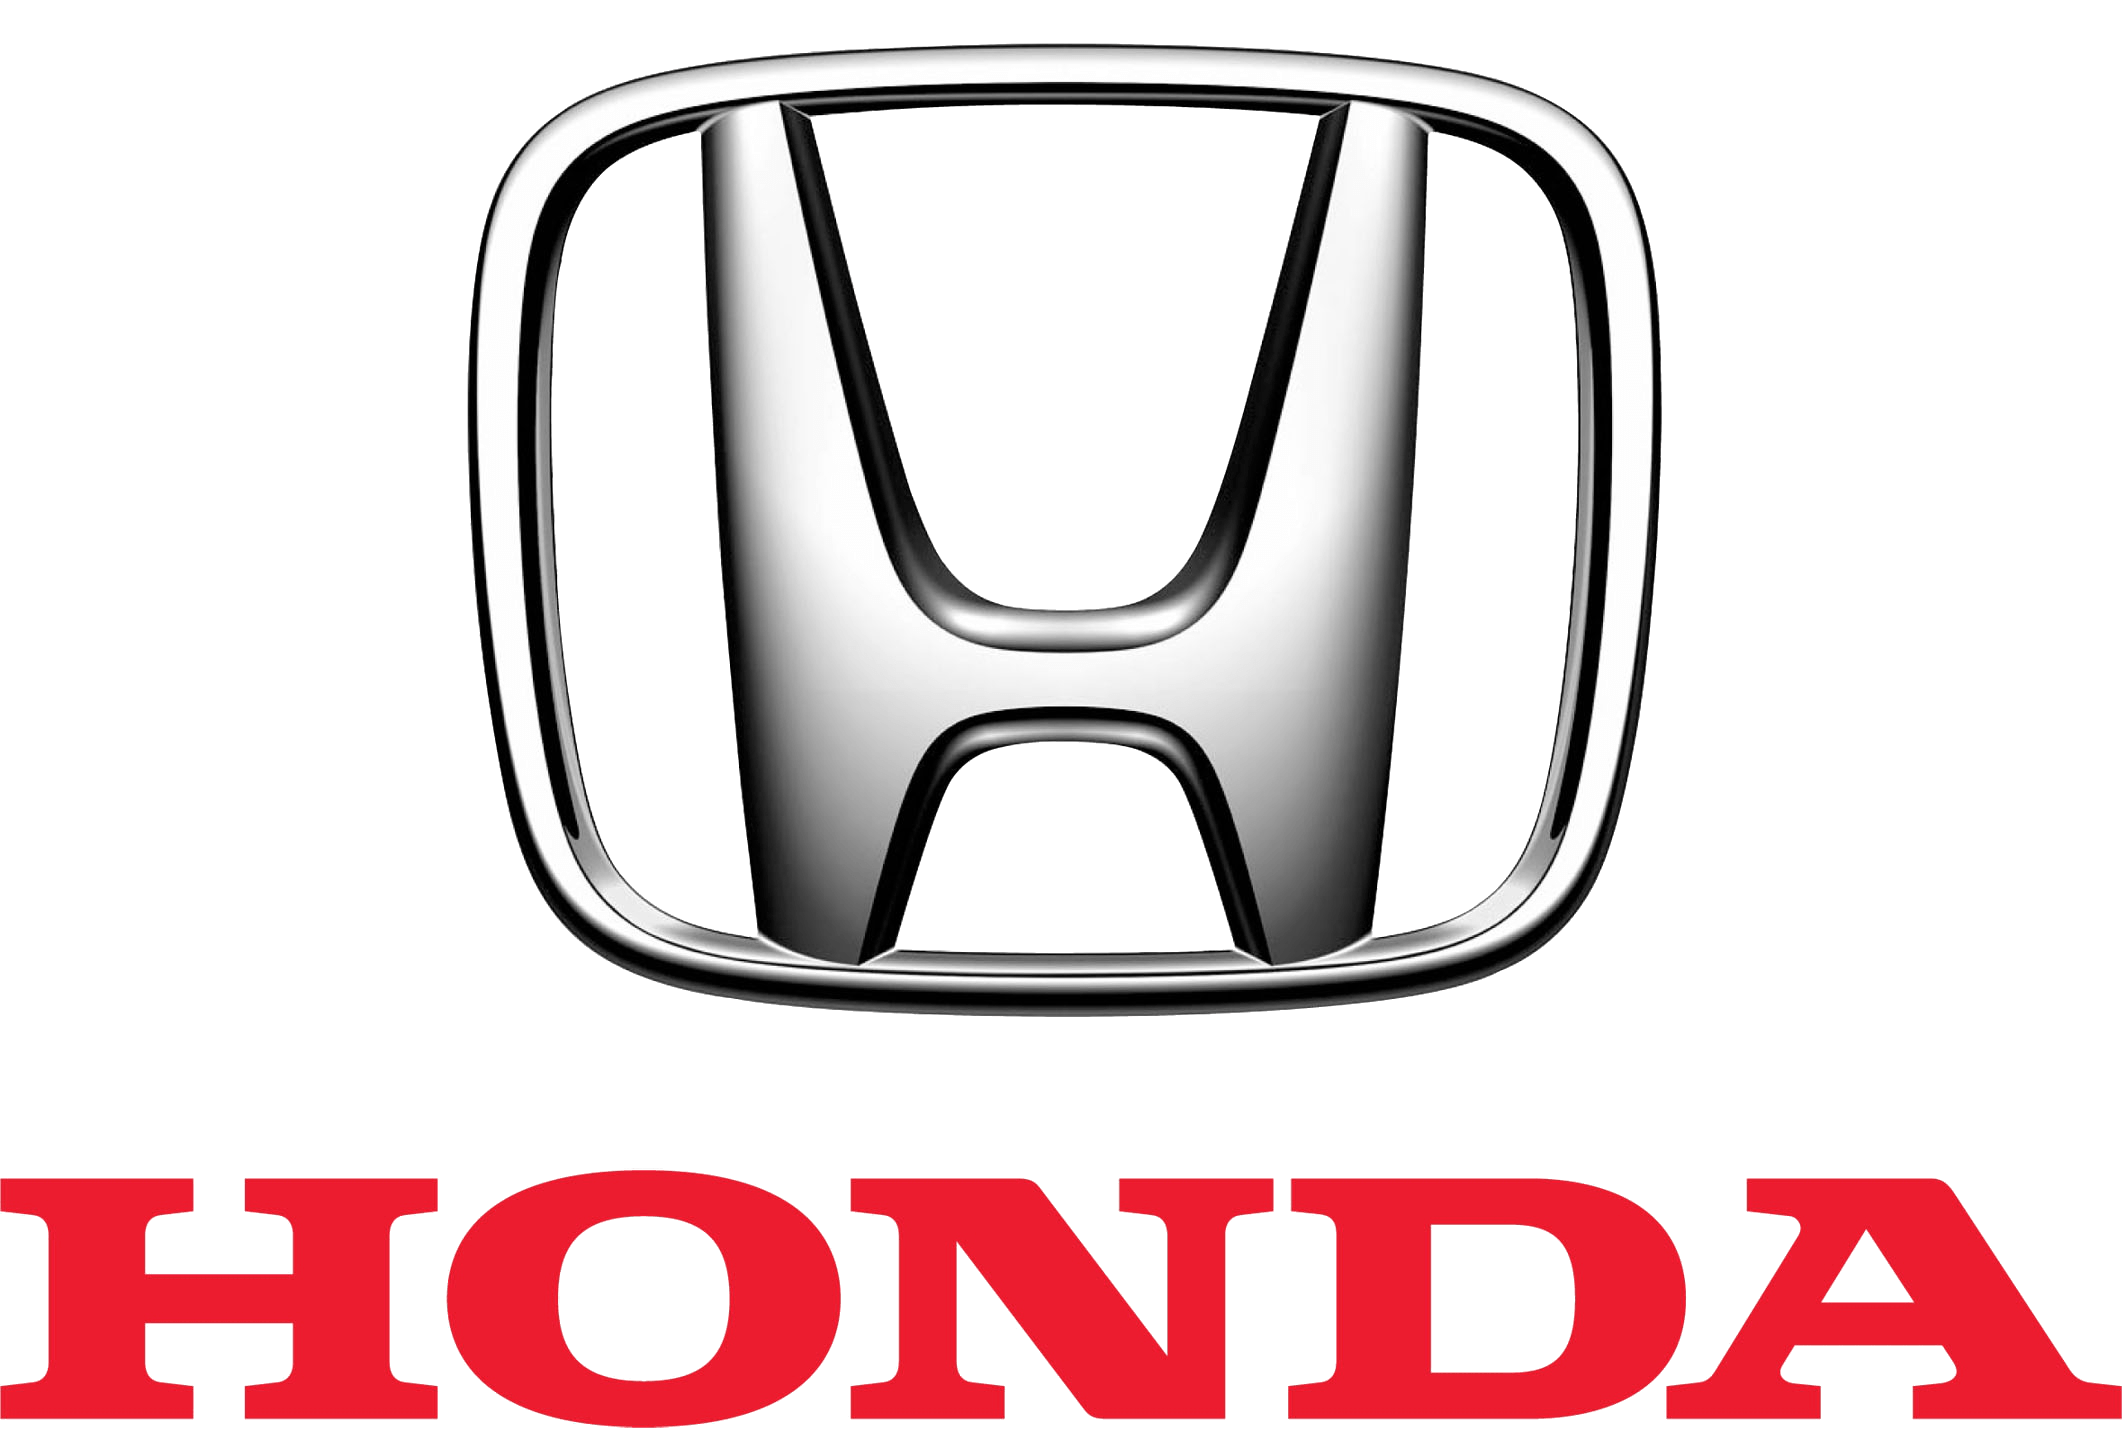 Image result for Honda logo transparent background